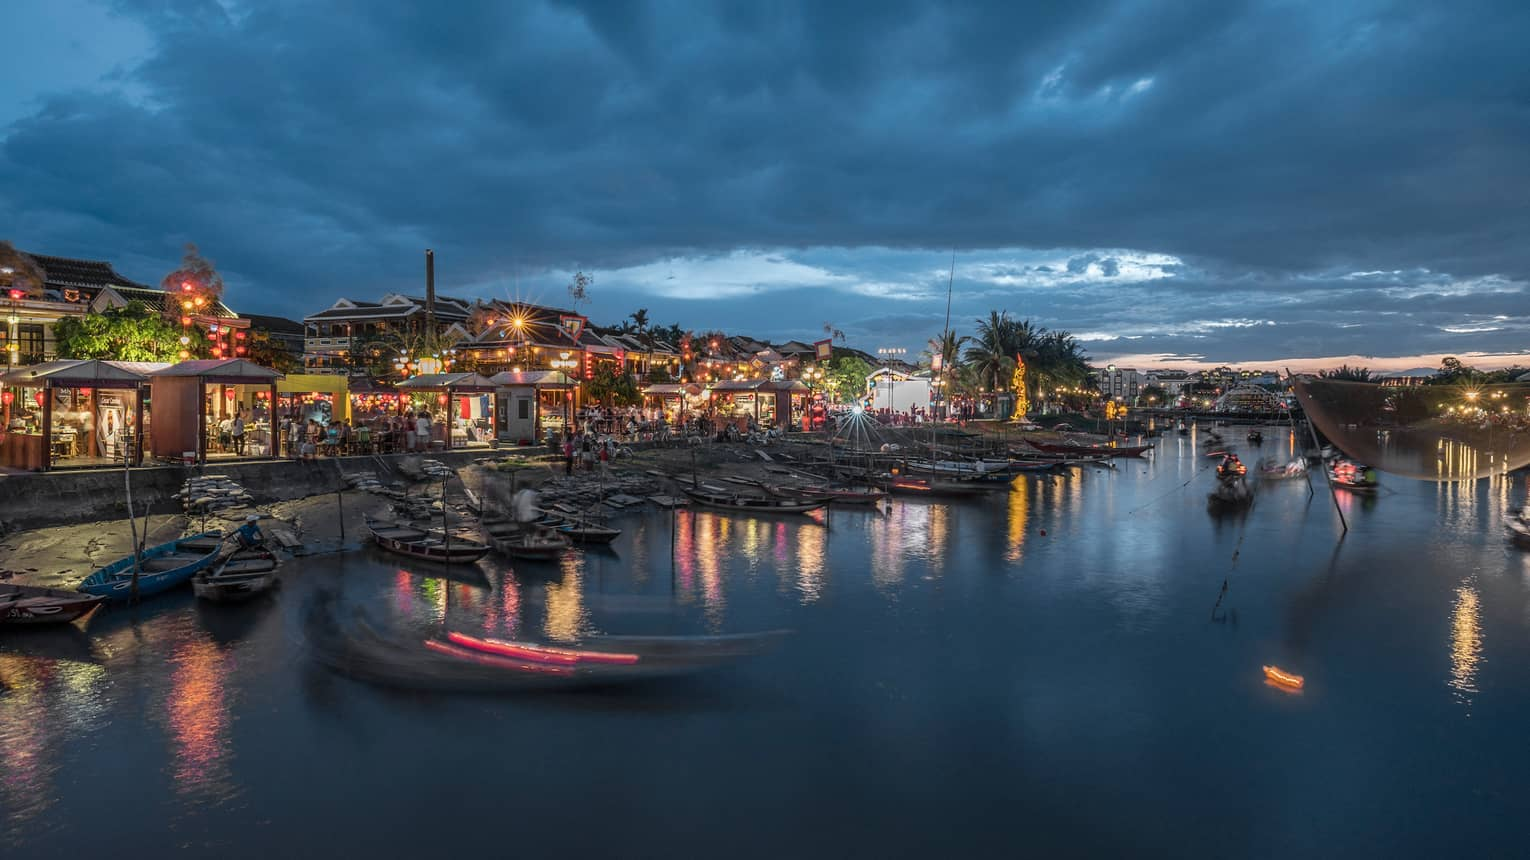 Colourful lights around buildings, markets on Hoi An waterfront at night